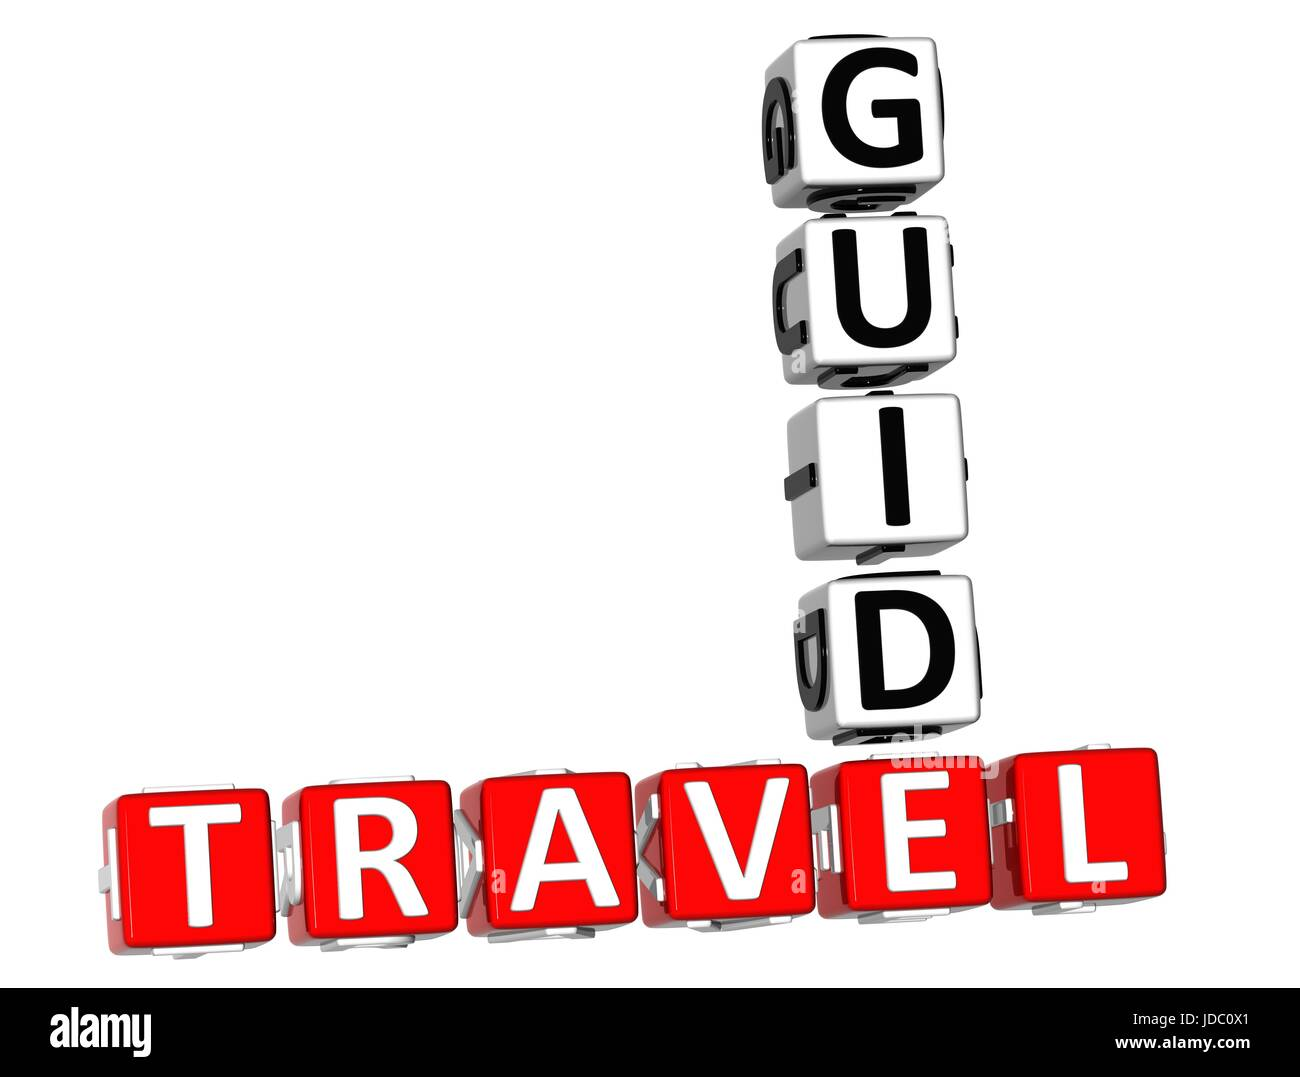 3D Travel Guide Crossword on white background - Stock Image